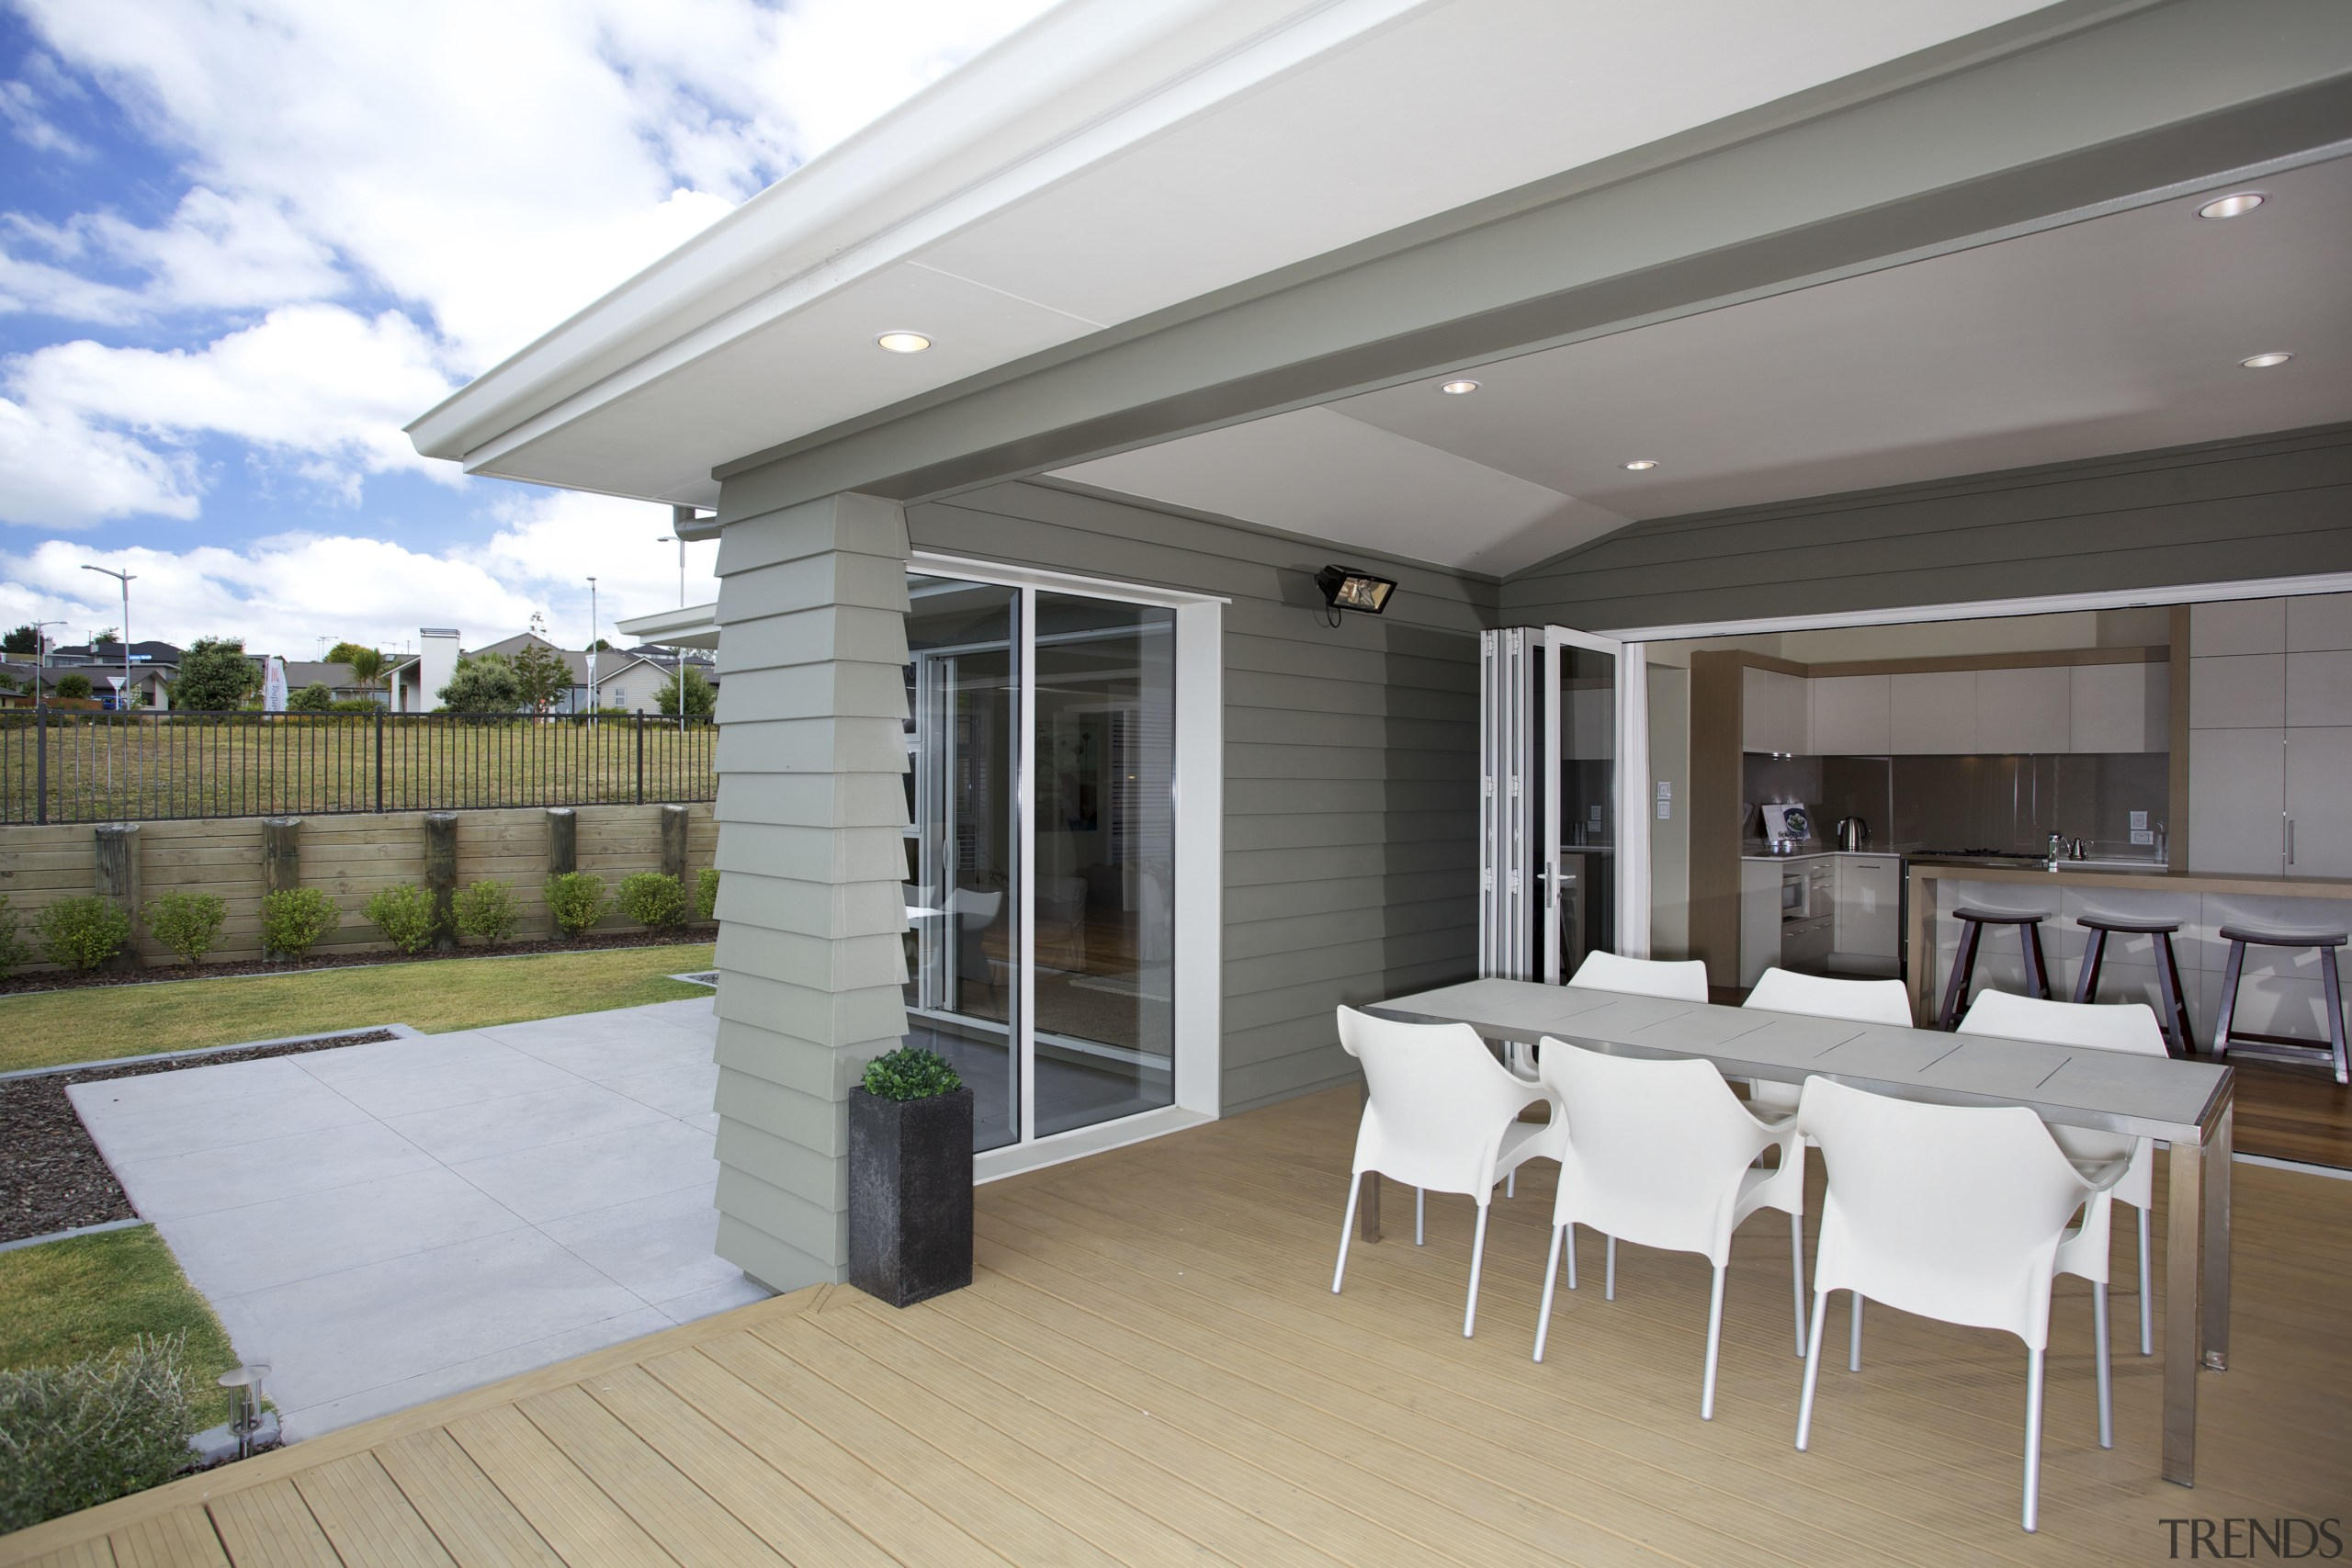 this show home has several features with a house, interior design, property, real estate, roof, window, gray